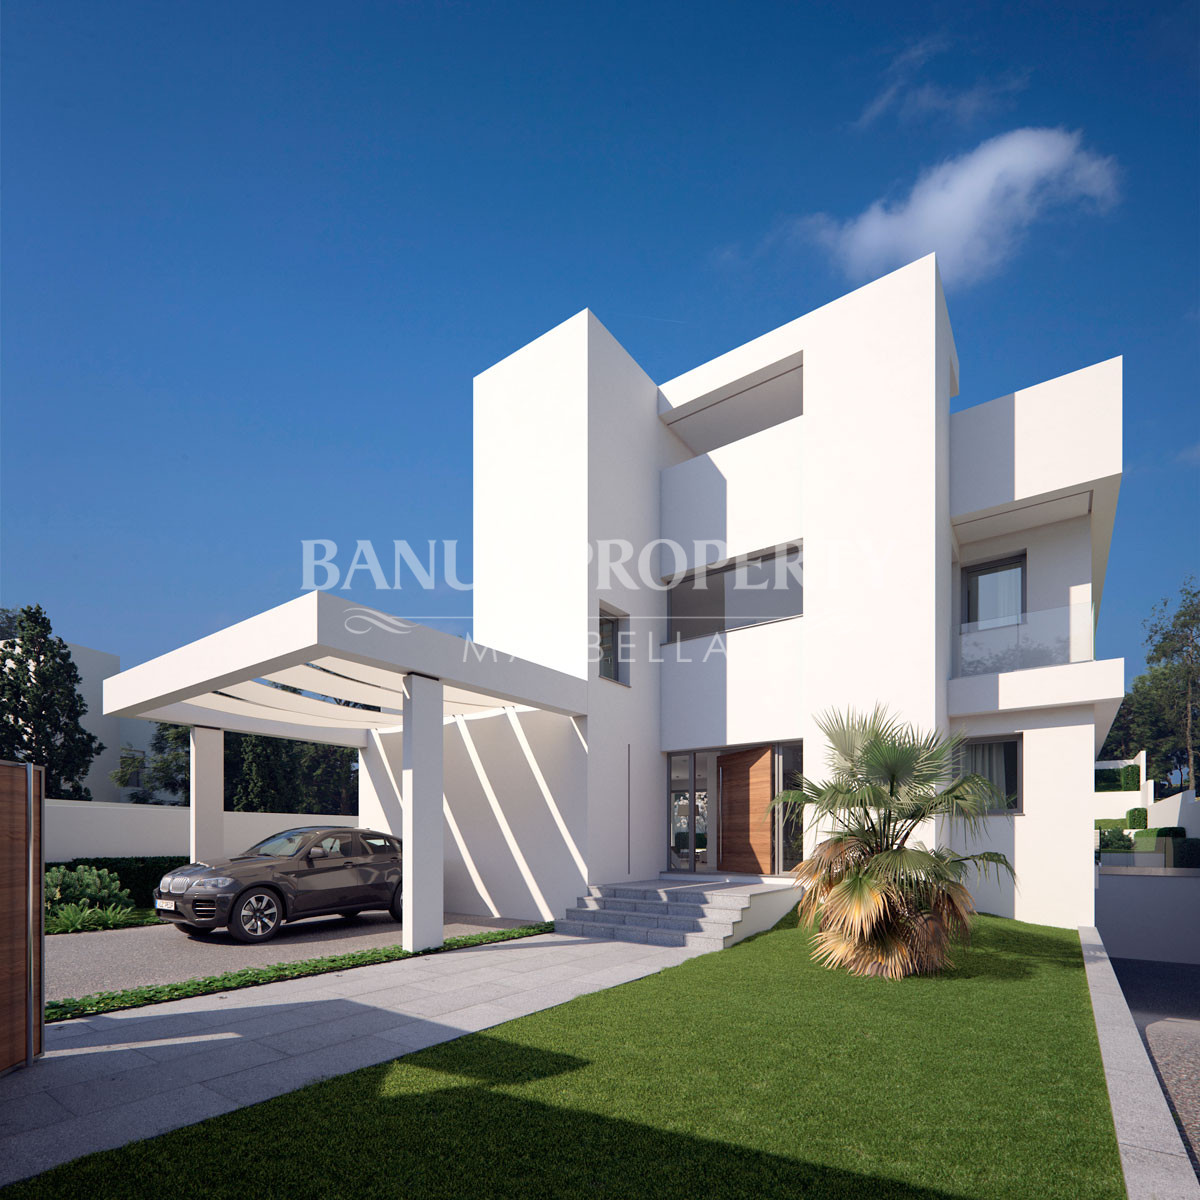 Luxury contemporary four-bedroom villa for sale within walking distance of Puerto Banús